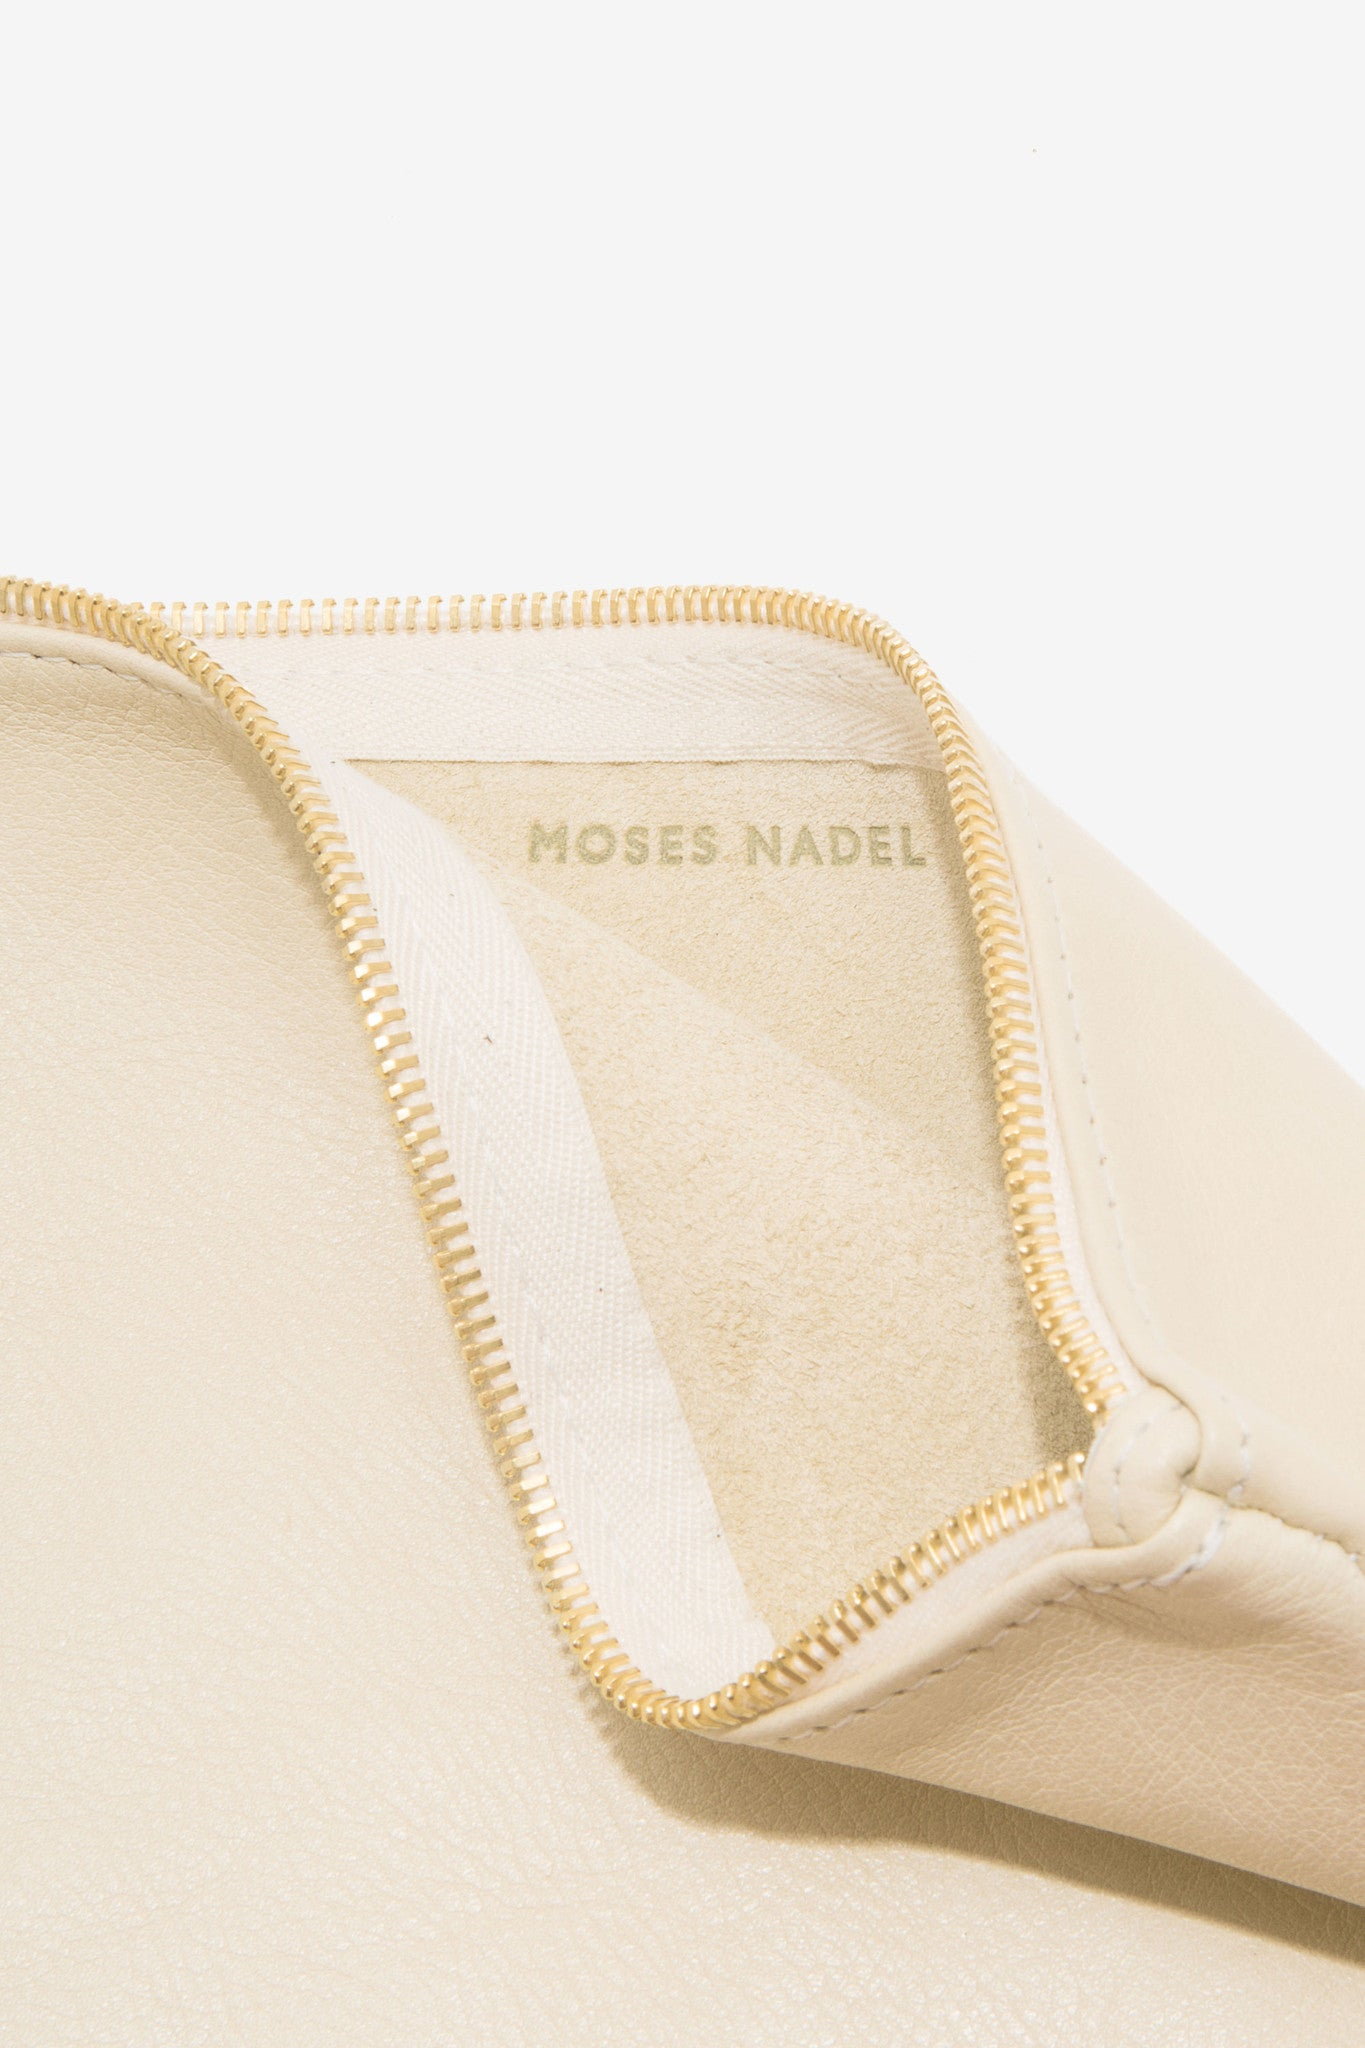 The Large Cream Pouch is a large leather pouch with a leather tassel zip by Moses Nadel.